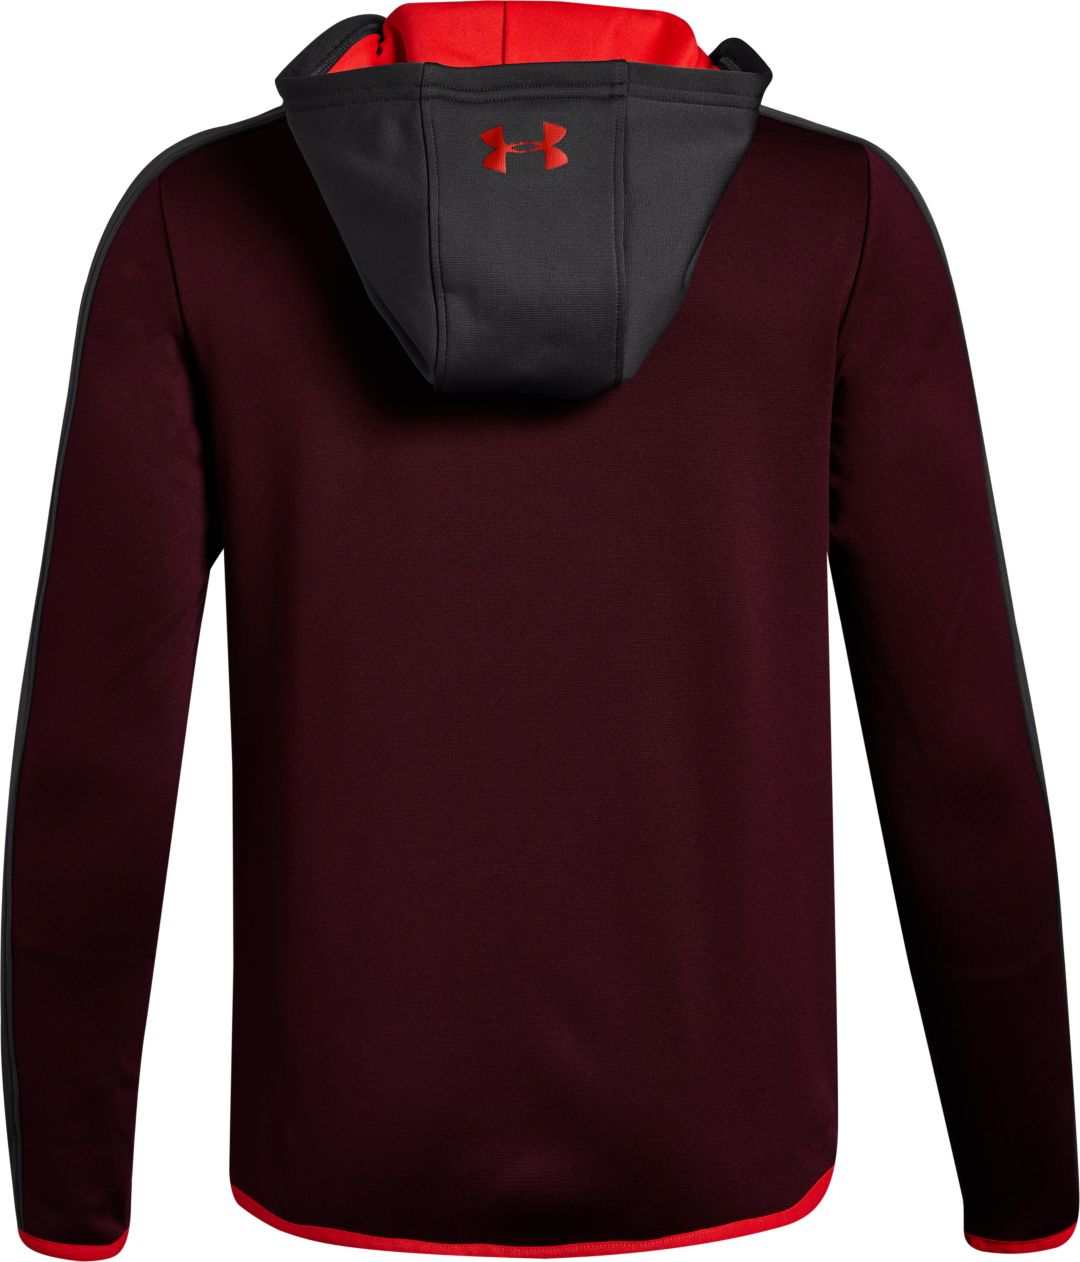 7ecb4ec9d Under Armour Boys' Armour Fleece Full Zip Hoodie | DICK'S Sporting Goods